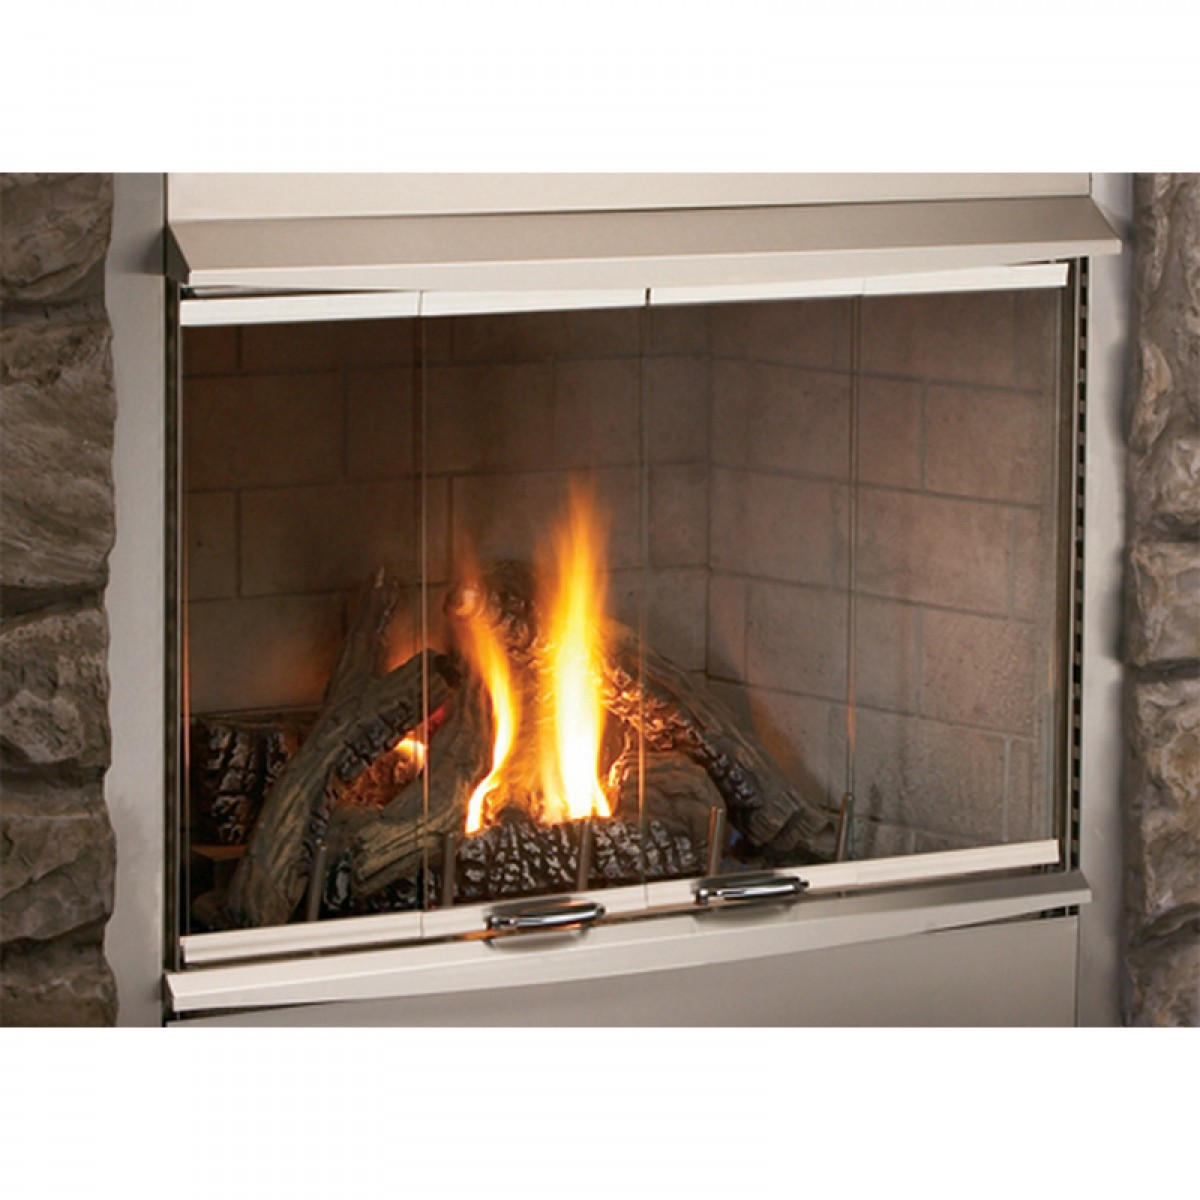 Get a great deal on the IHP Superior VRE4300 Vent Free Outdoor Gas Fireplace-F0511 at iBuyFireplaces. We stock the full line of IHP Superior Fireplaces at iBuyFireplaces.